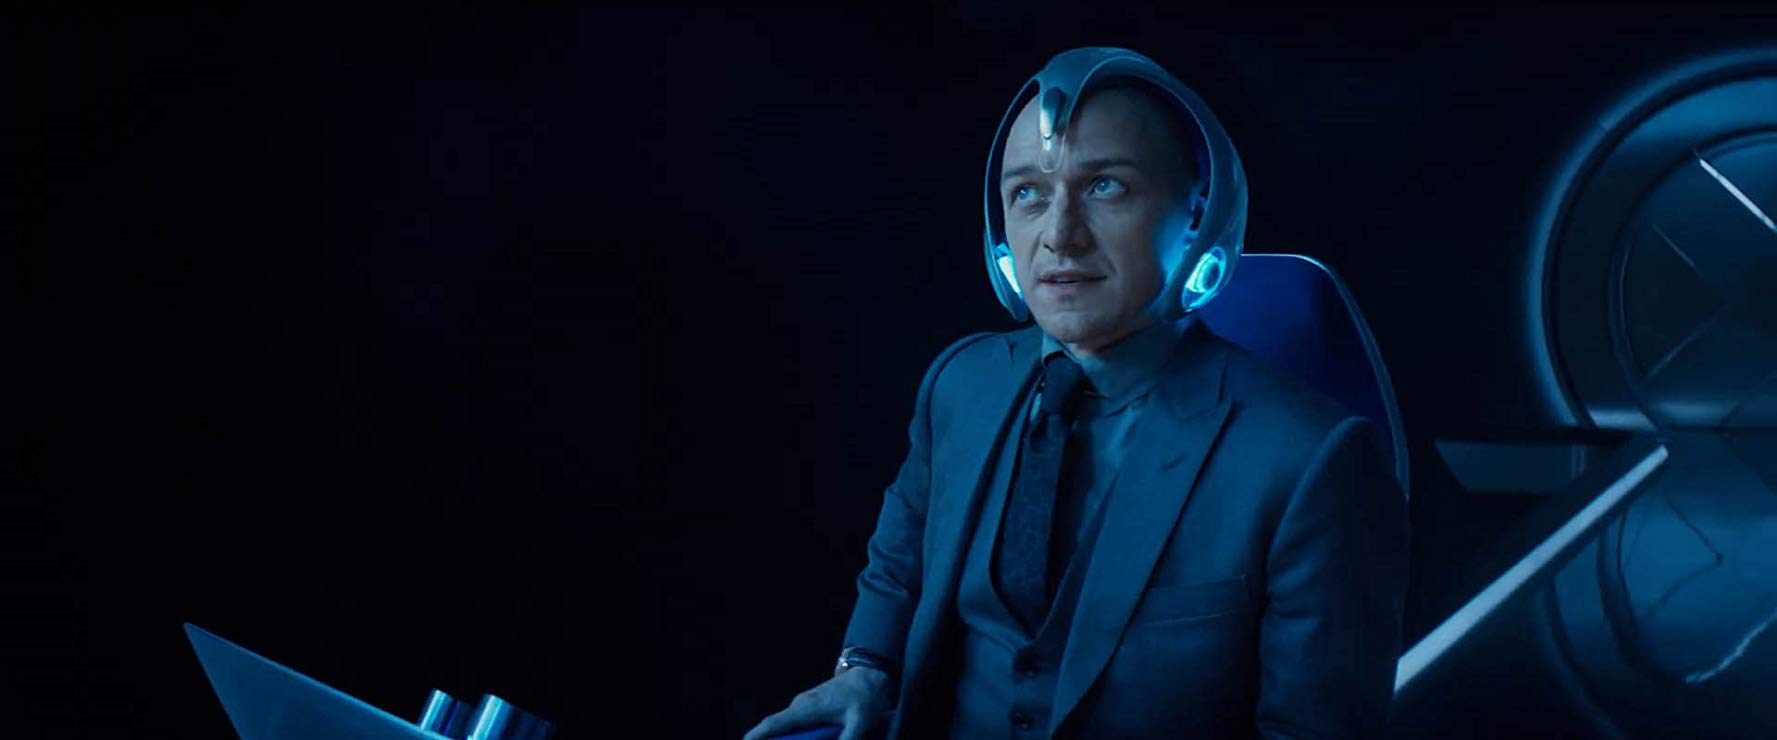 "James McAvoy in <a href=""https://entertainment.ie/cinema/movie-reviews/x-men-dark-phoenix-7257/"">X-Men: Dark Phoenix</a>"